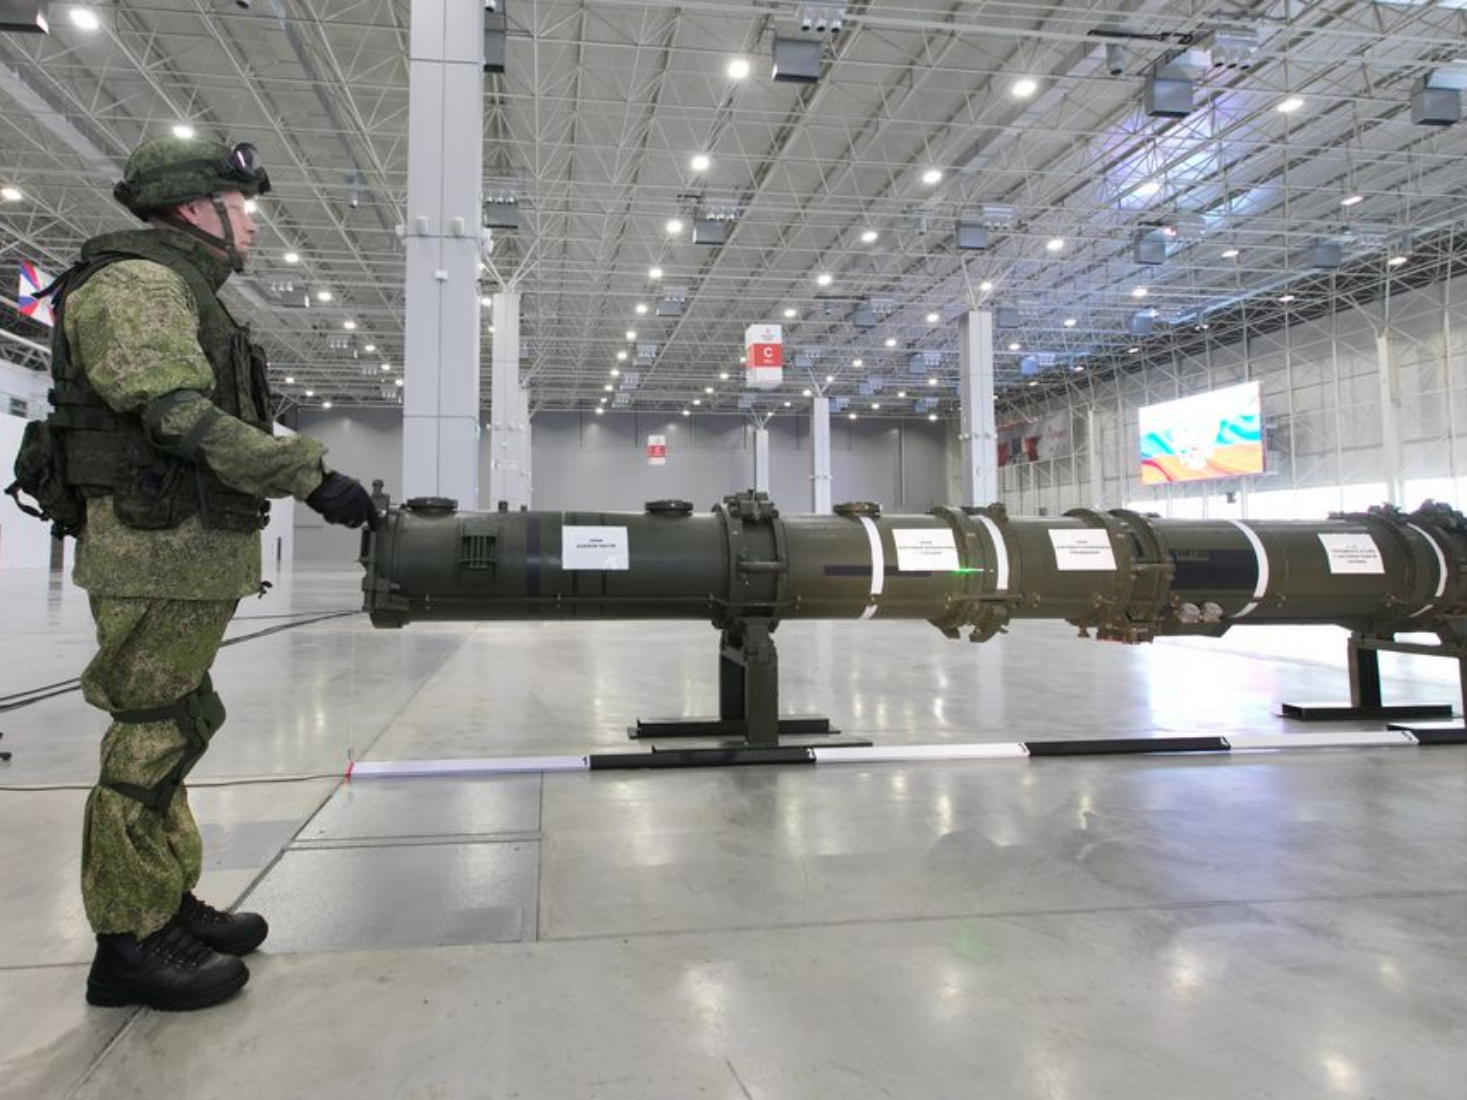 US formally withdraws from INF missile treaty